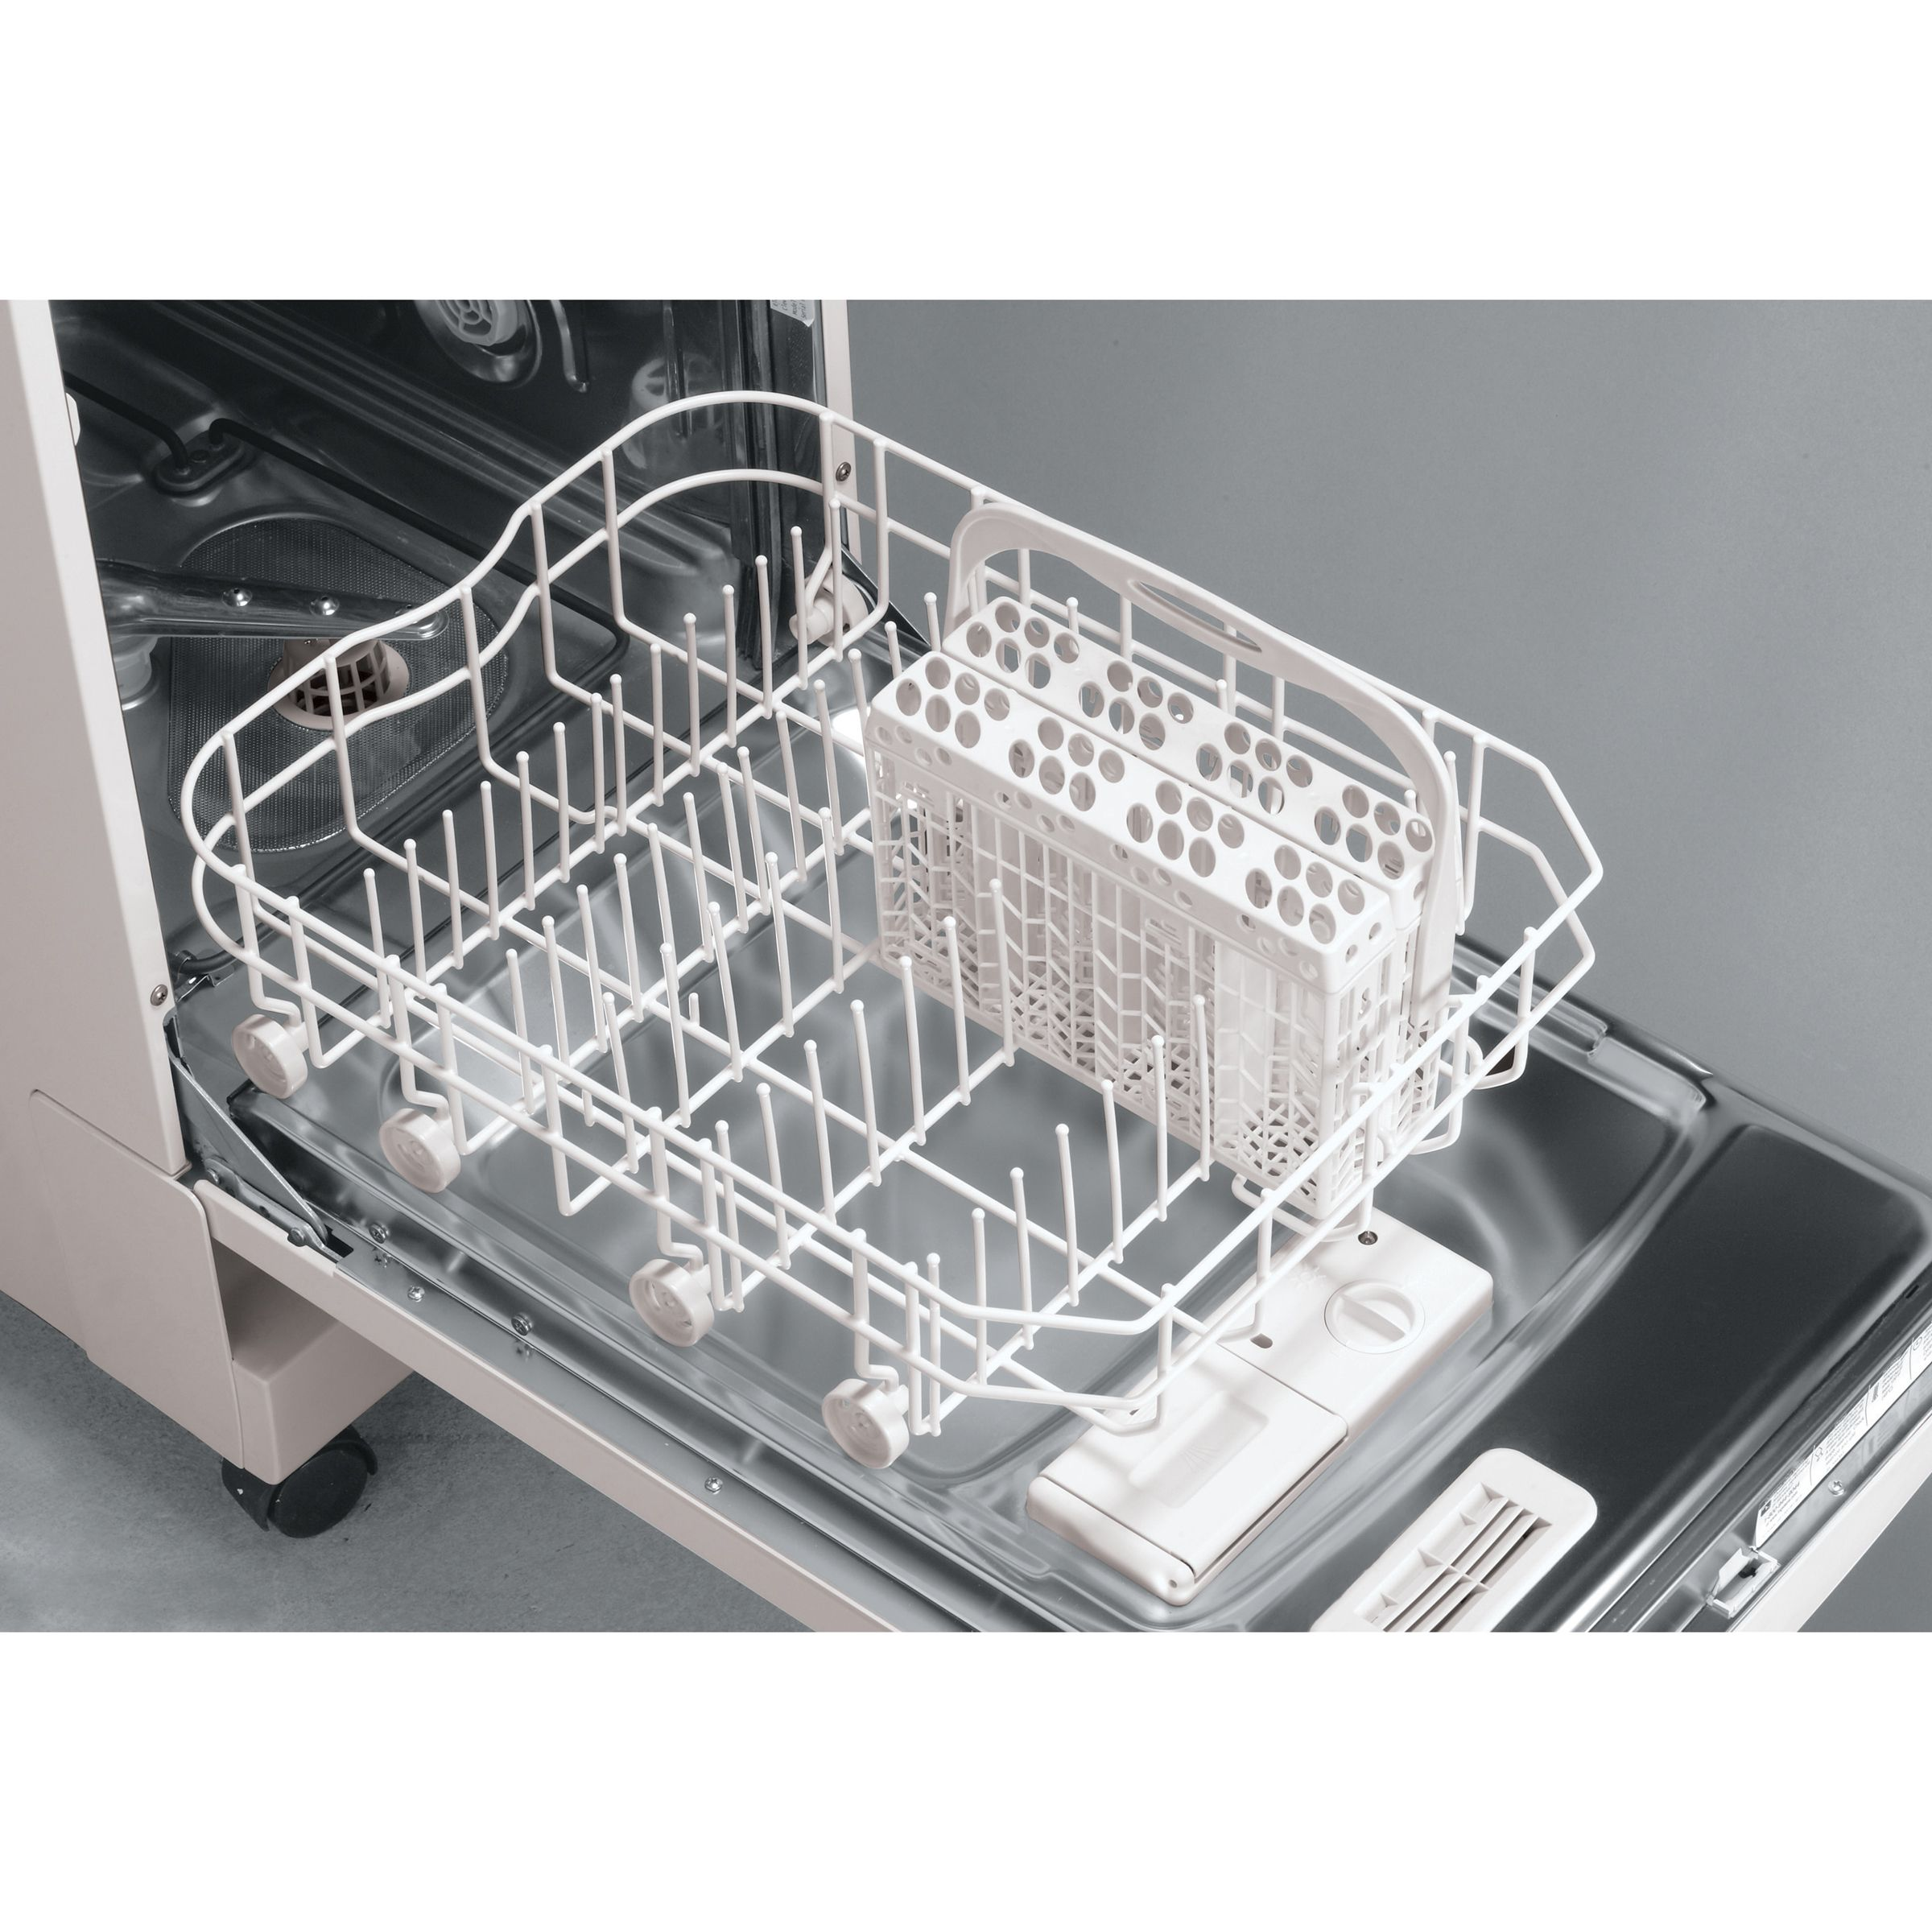 "Frigidaire 18"" Portable Dishwasher with Stainless Steel Interior"